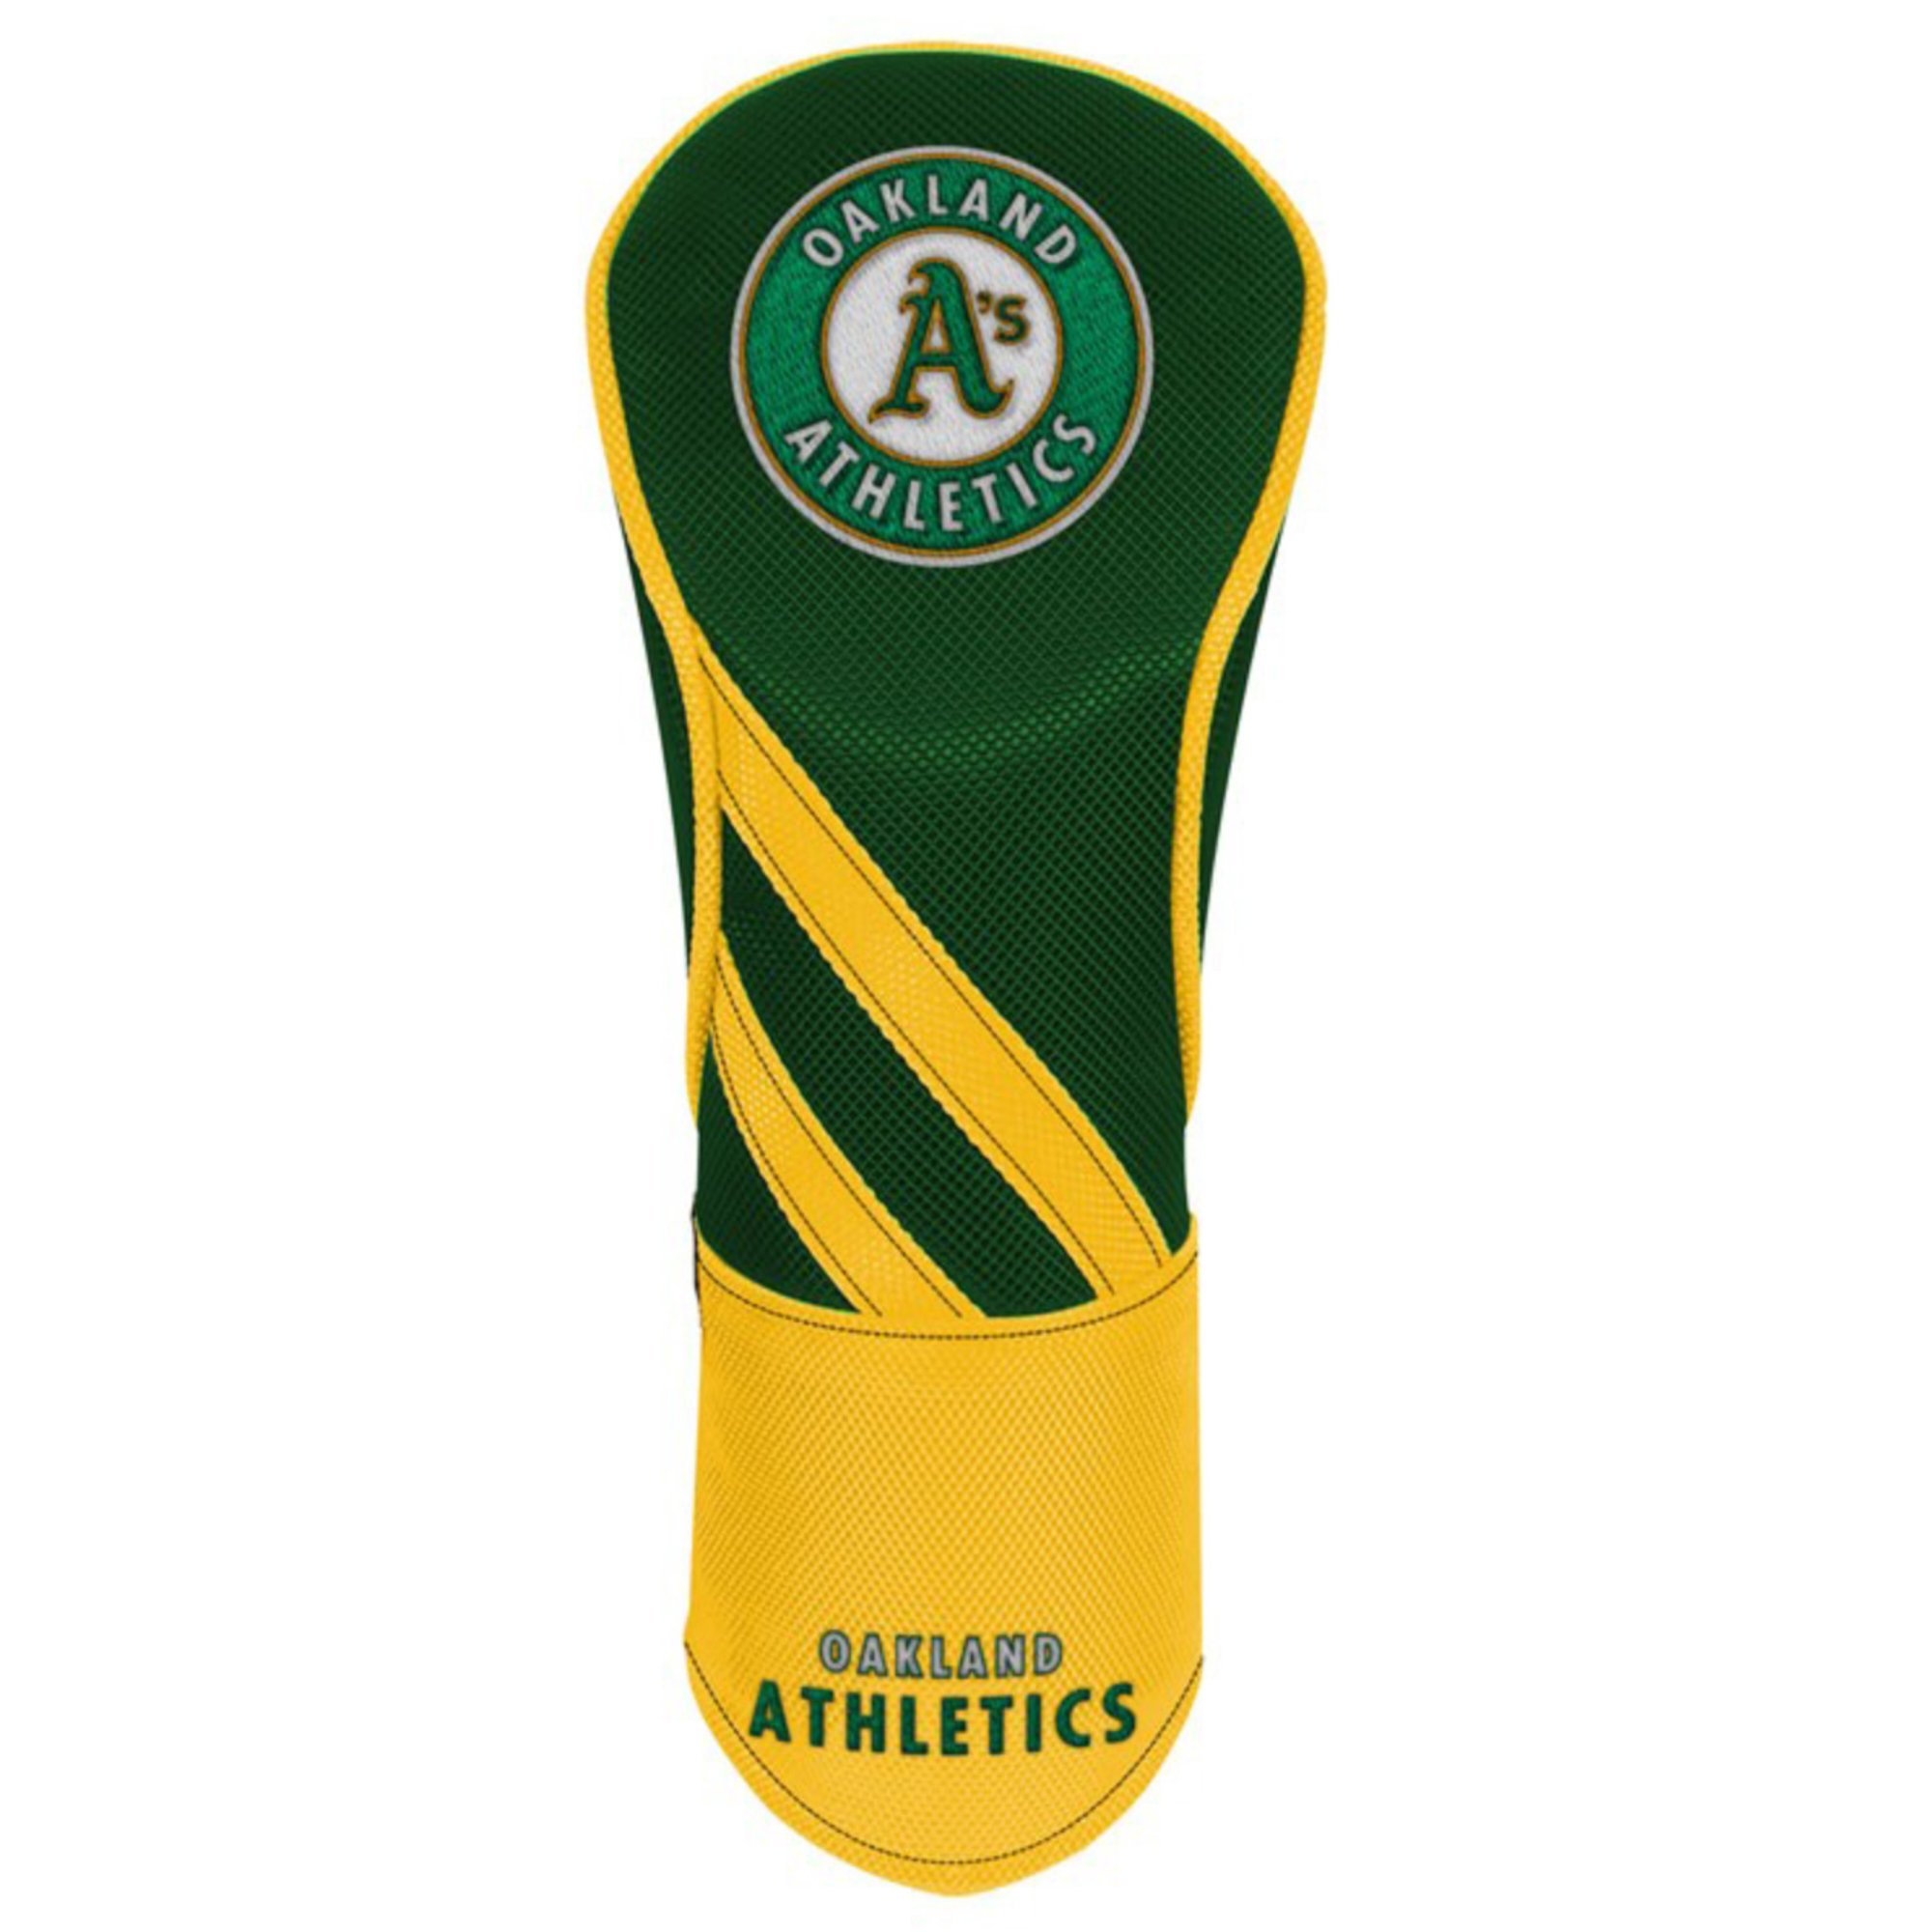 Oakland Athletics Individual Driver Headcover - No Size